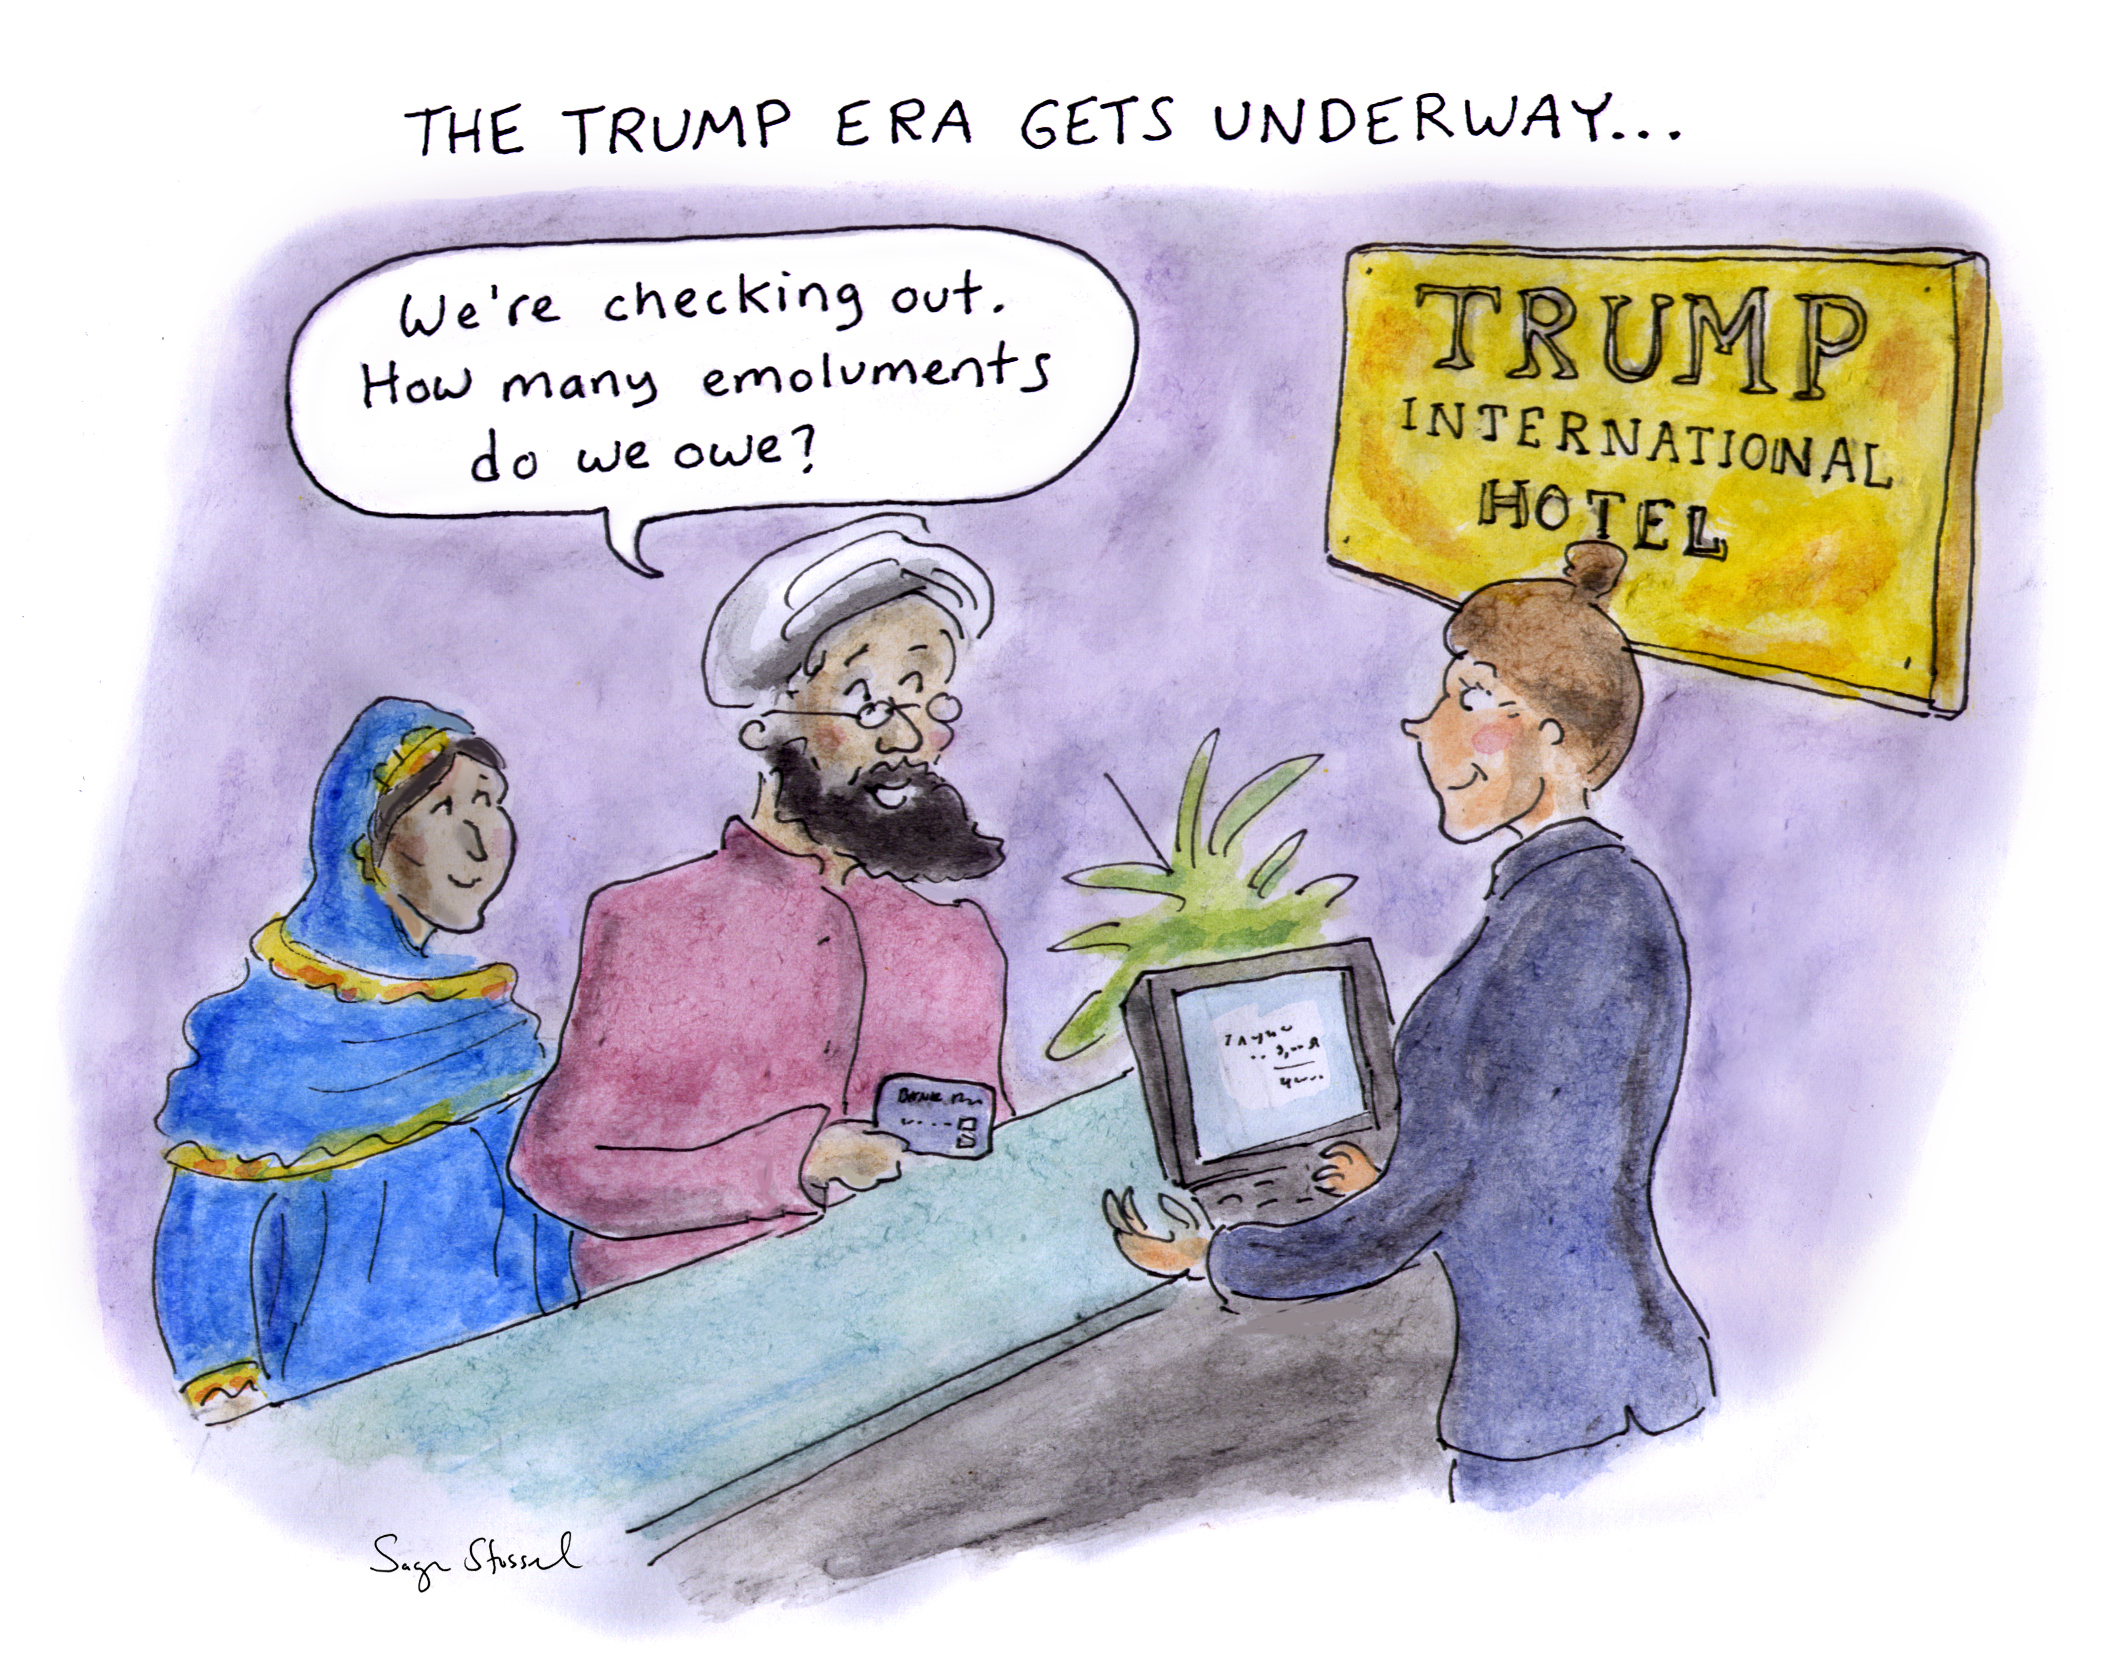 trump, ethics violations, emoluments clause, post office, d.c., trump international hotel, presidency, constitution, foreign gifts cartoon